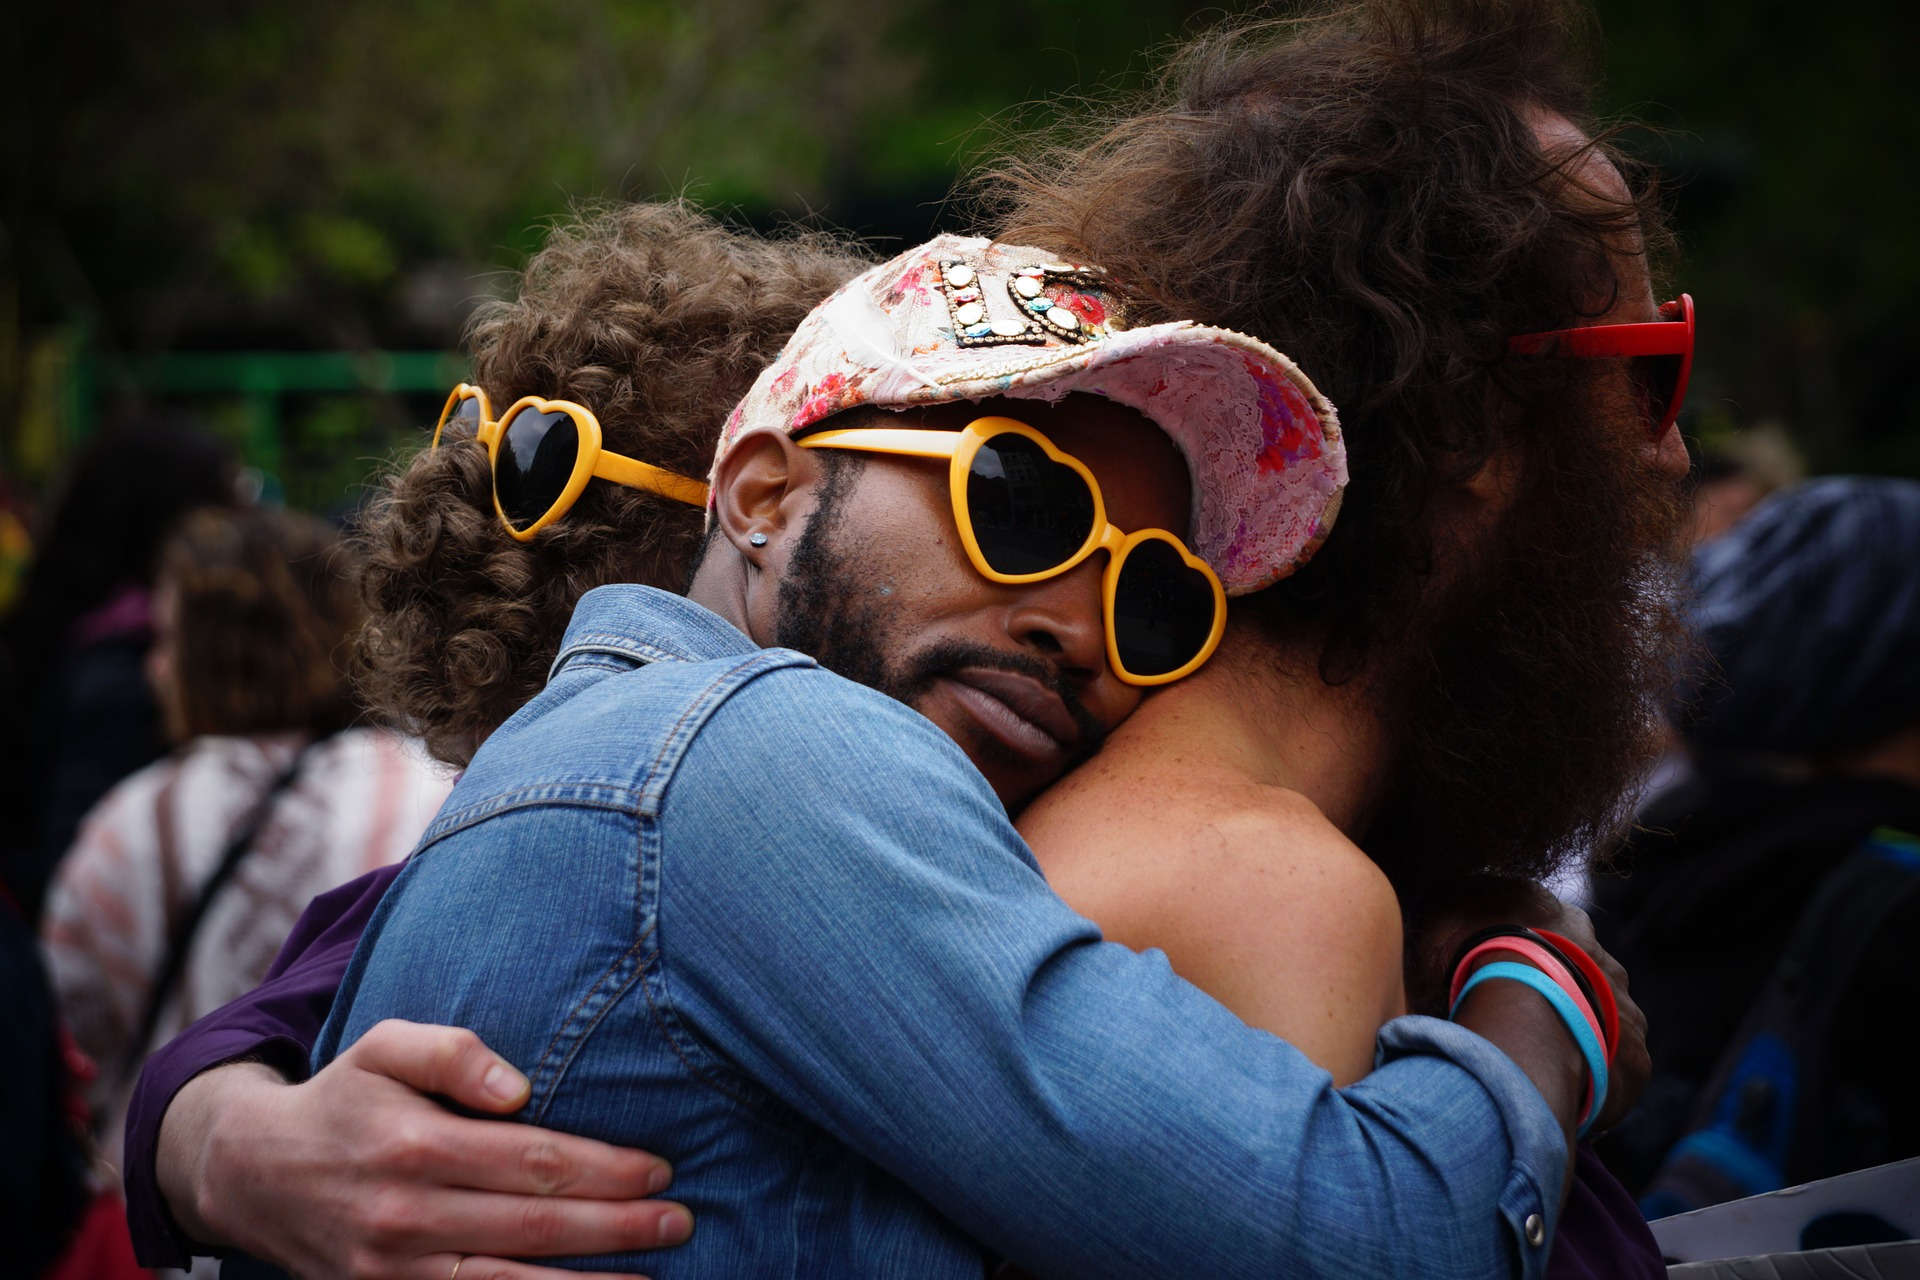 A Black man in sunglasses and a cap is hugging two people from behind at an outdoor event; one is a shirtless man also in sunglasses, and the other is a woman with curly hair.